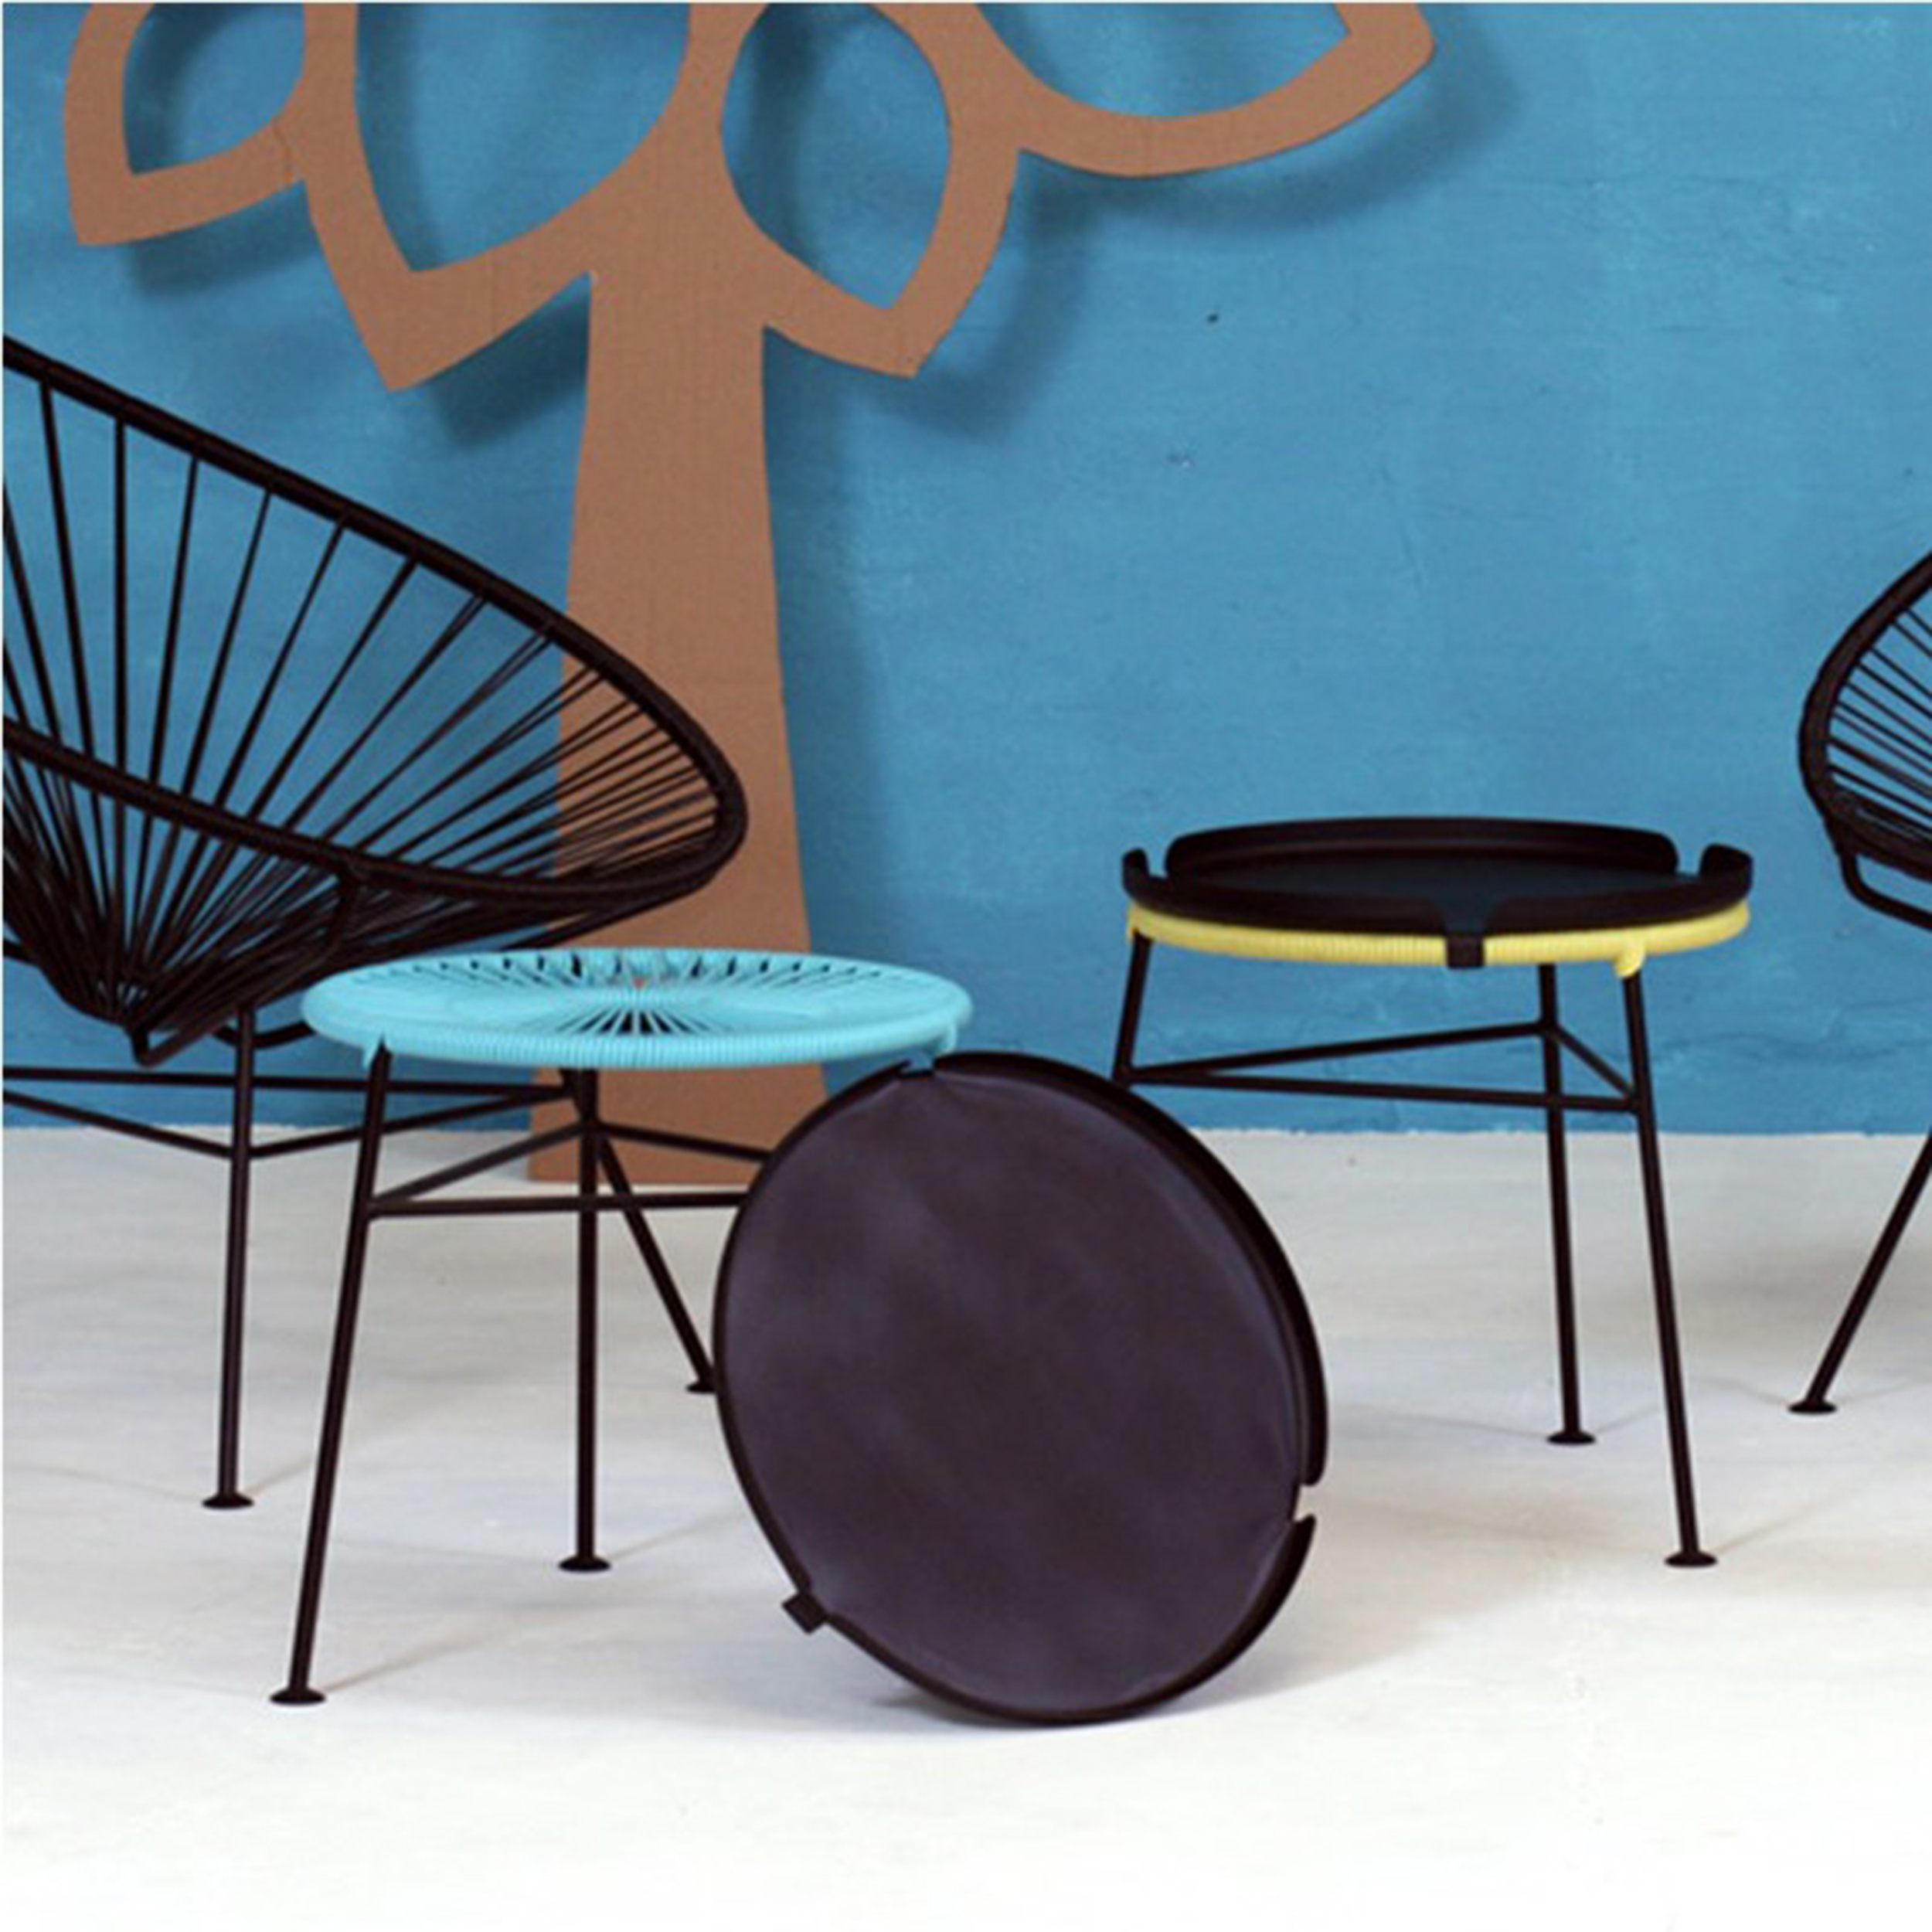 CENTRO  TABLE BY  OK DESIGN .   Frame in galvanized and powder coated solid steel; cord in UV filtered high quality PVC, free of phthalates and heavy metals.